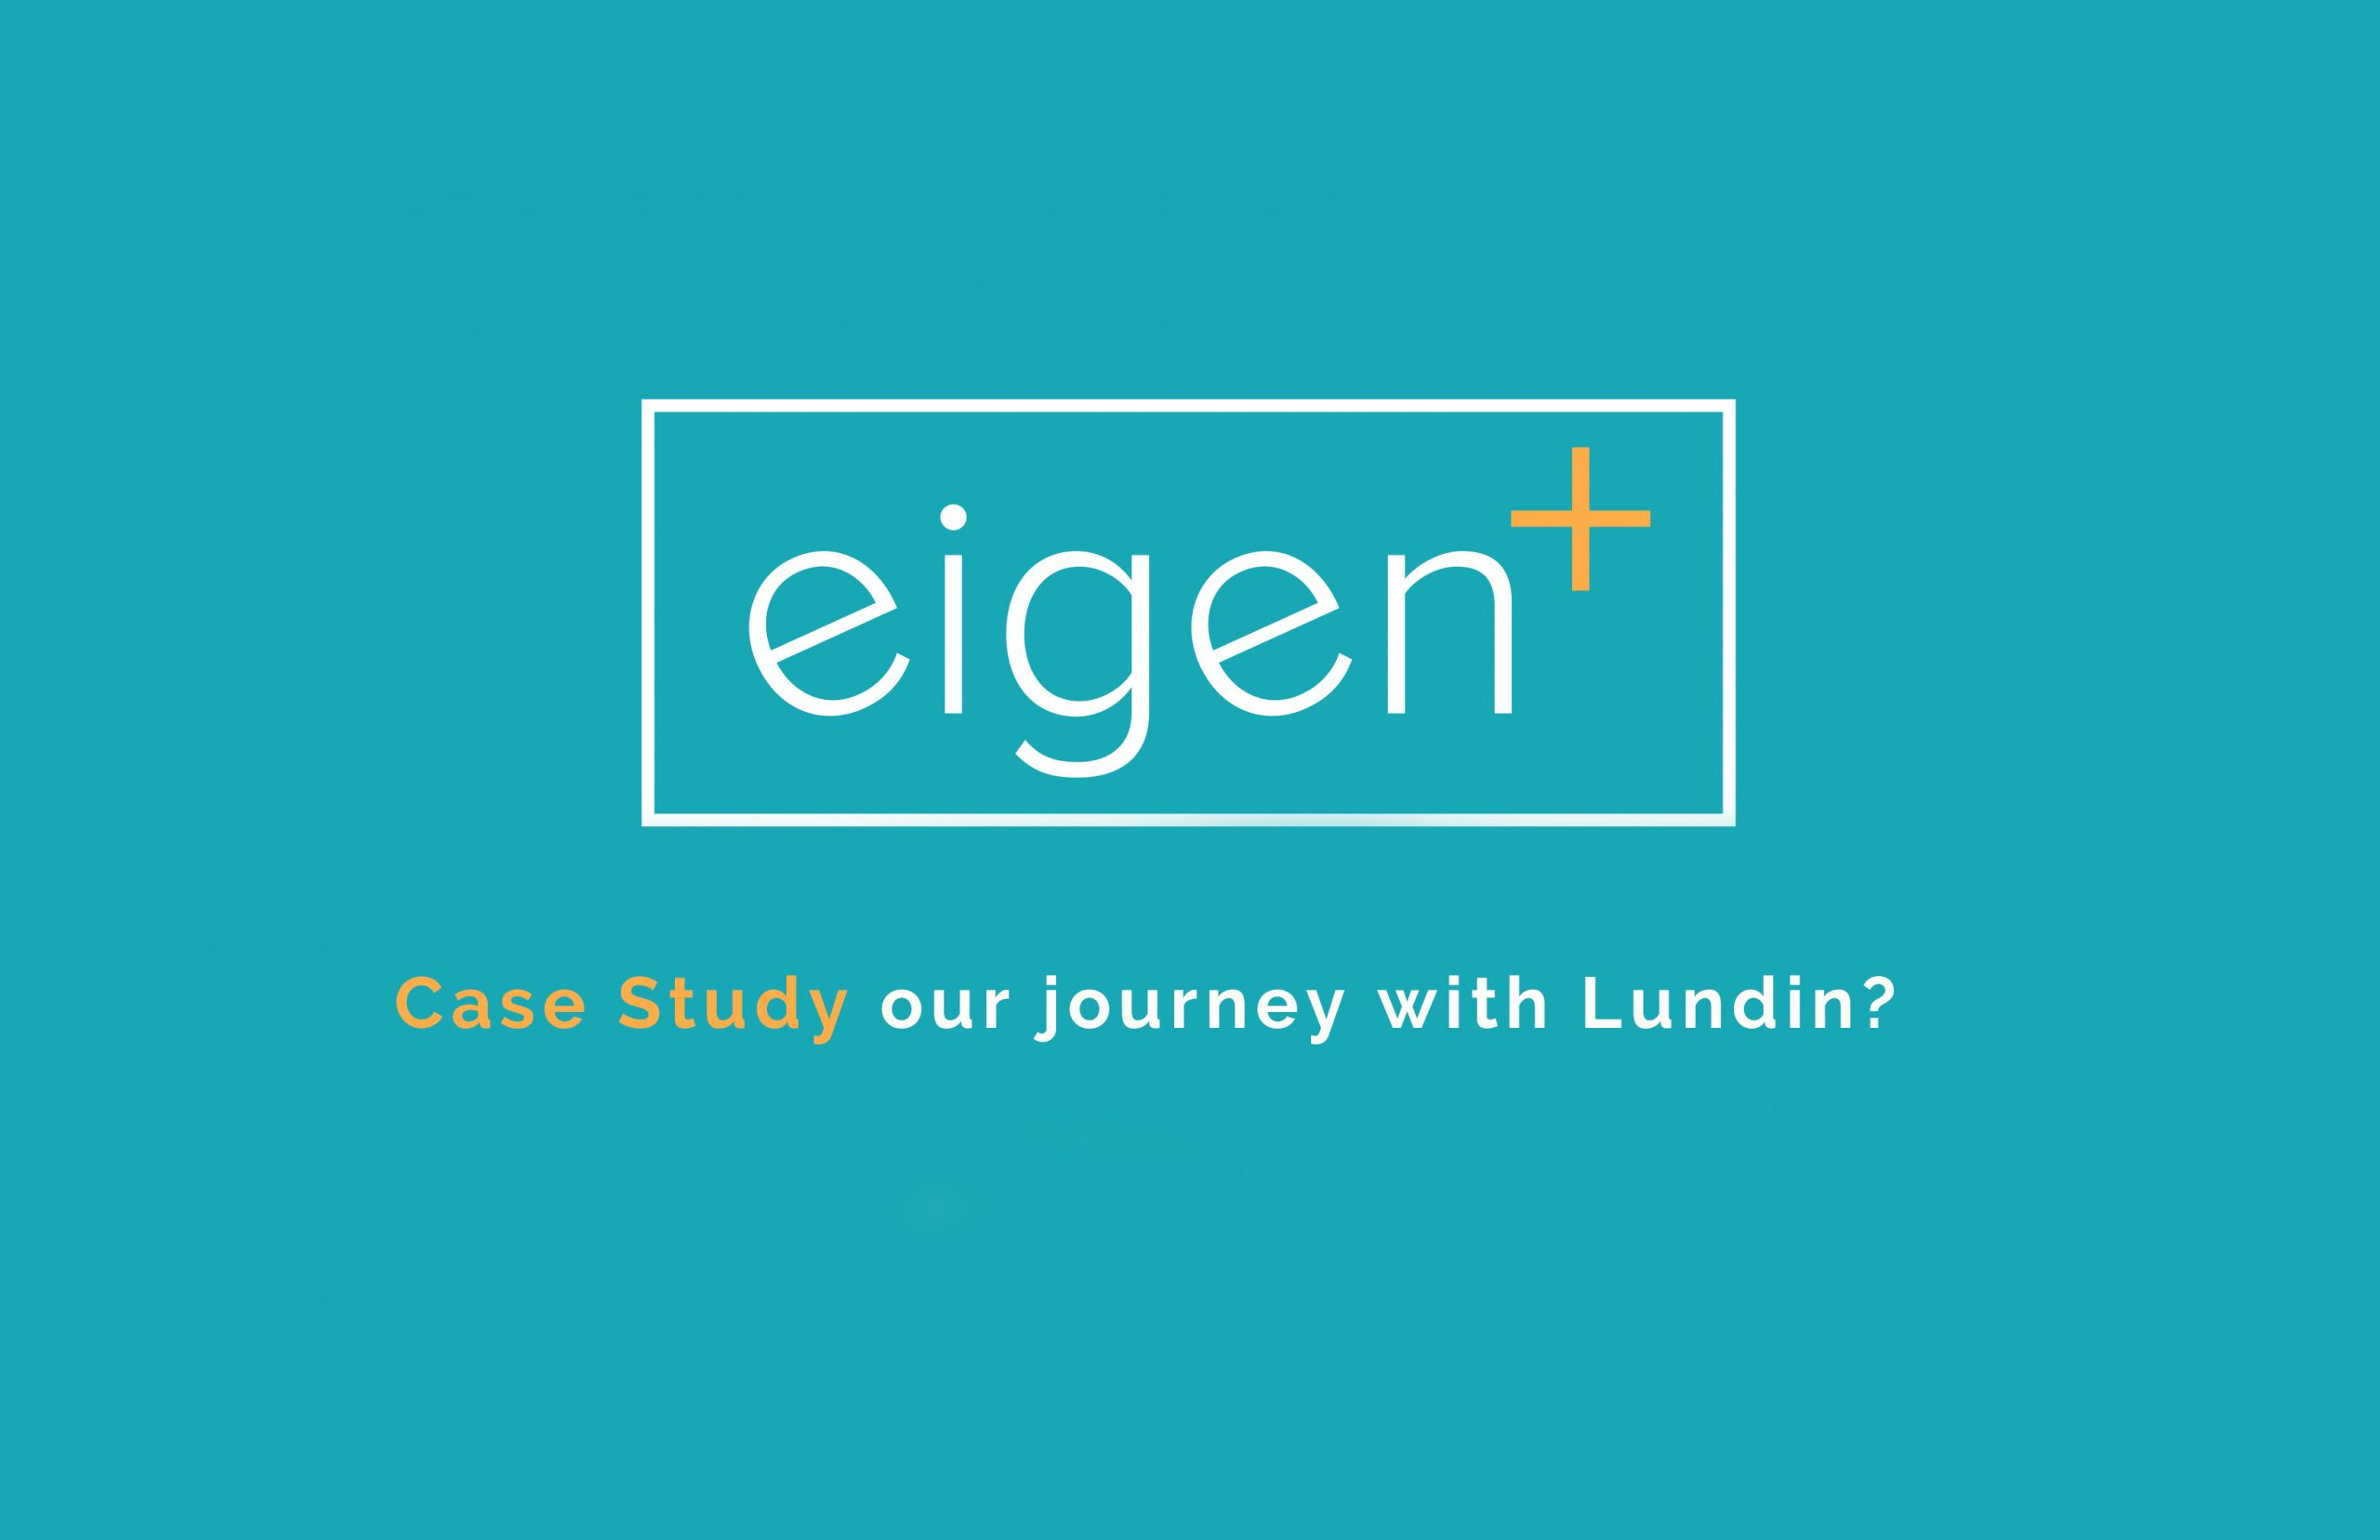 Eigen and Lundin - Our Journey